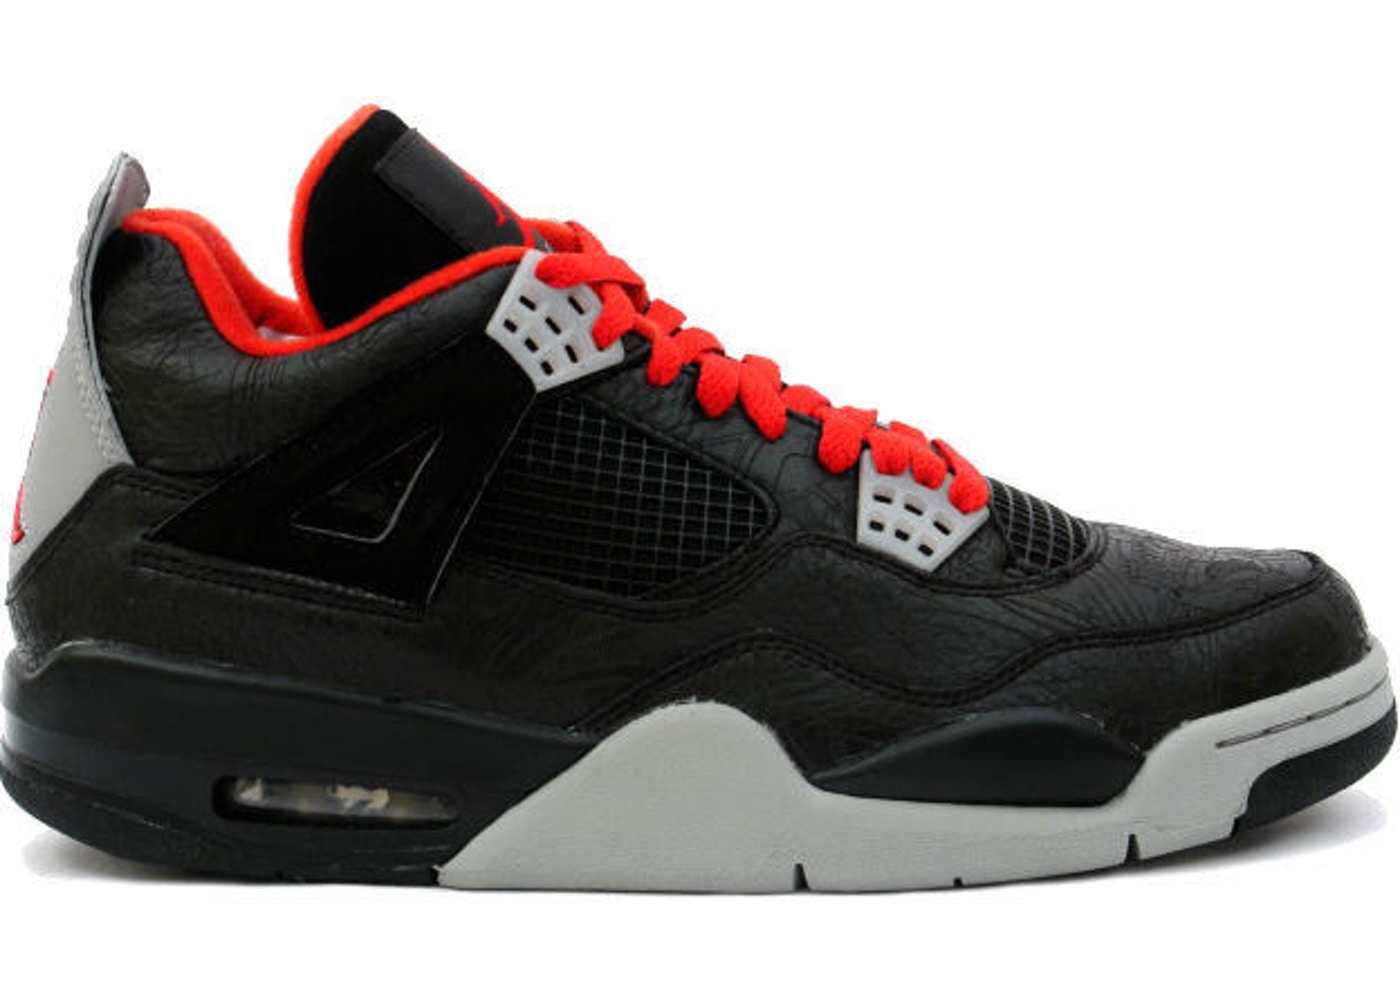 3e1c9df11e6 Buy Air Jordan 4 Shoes & Deadstock Sneakers